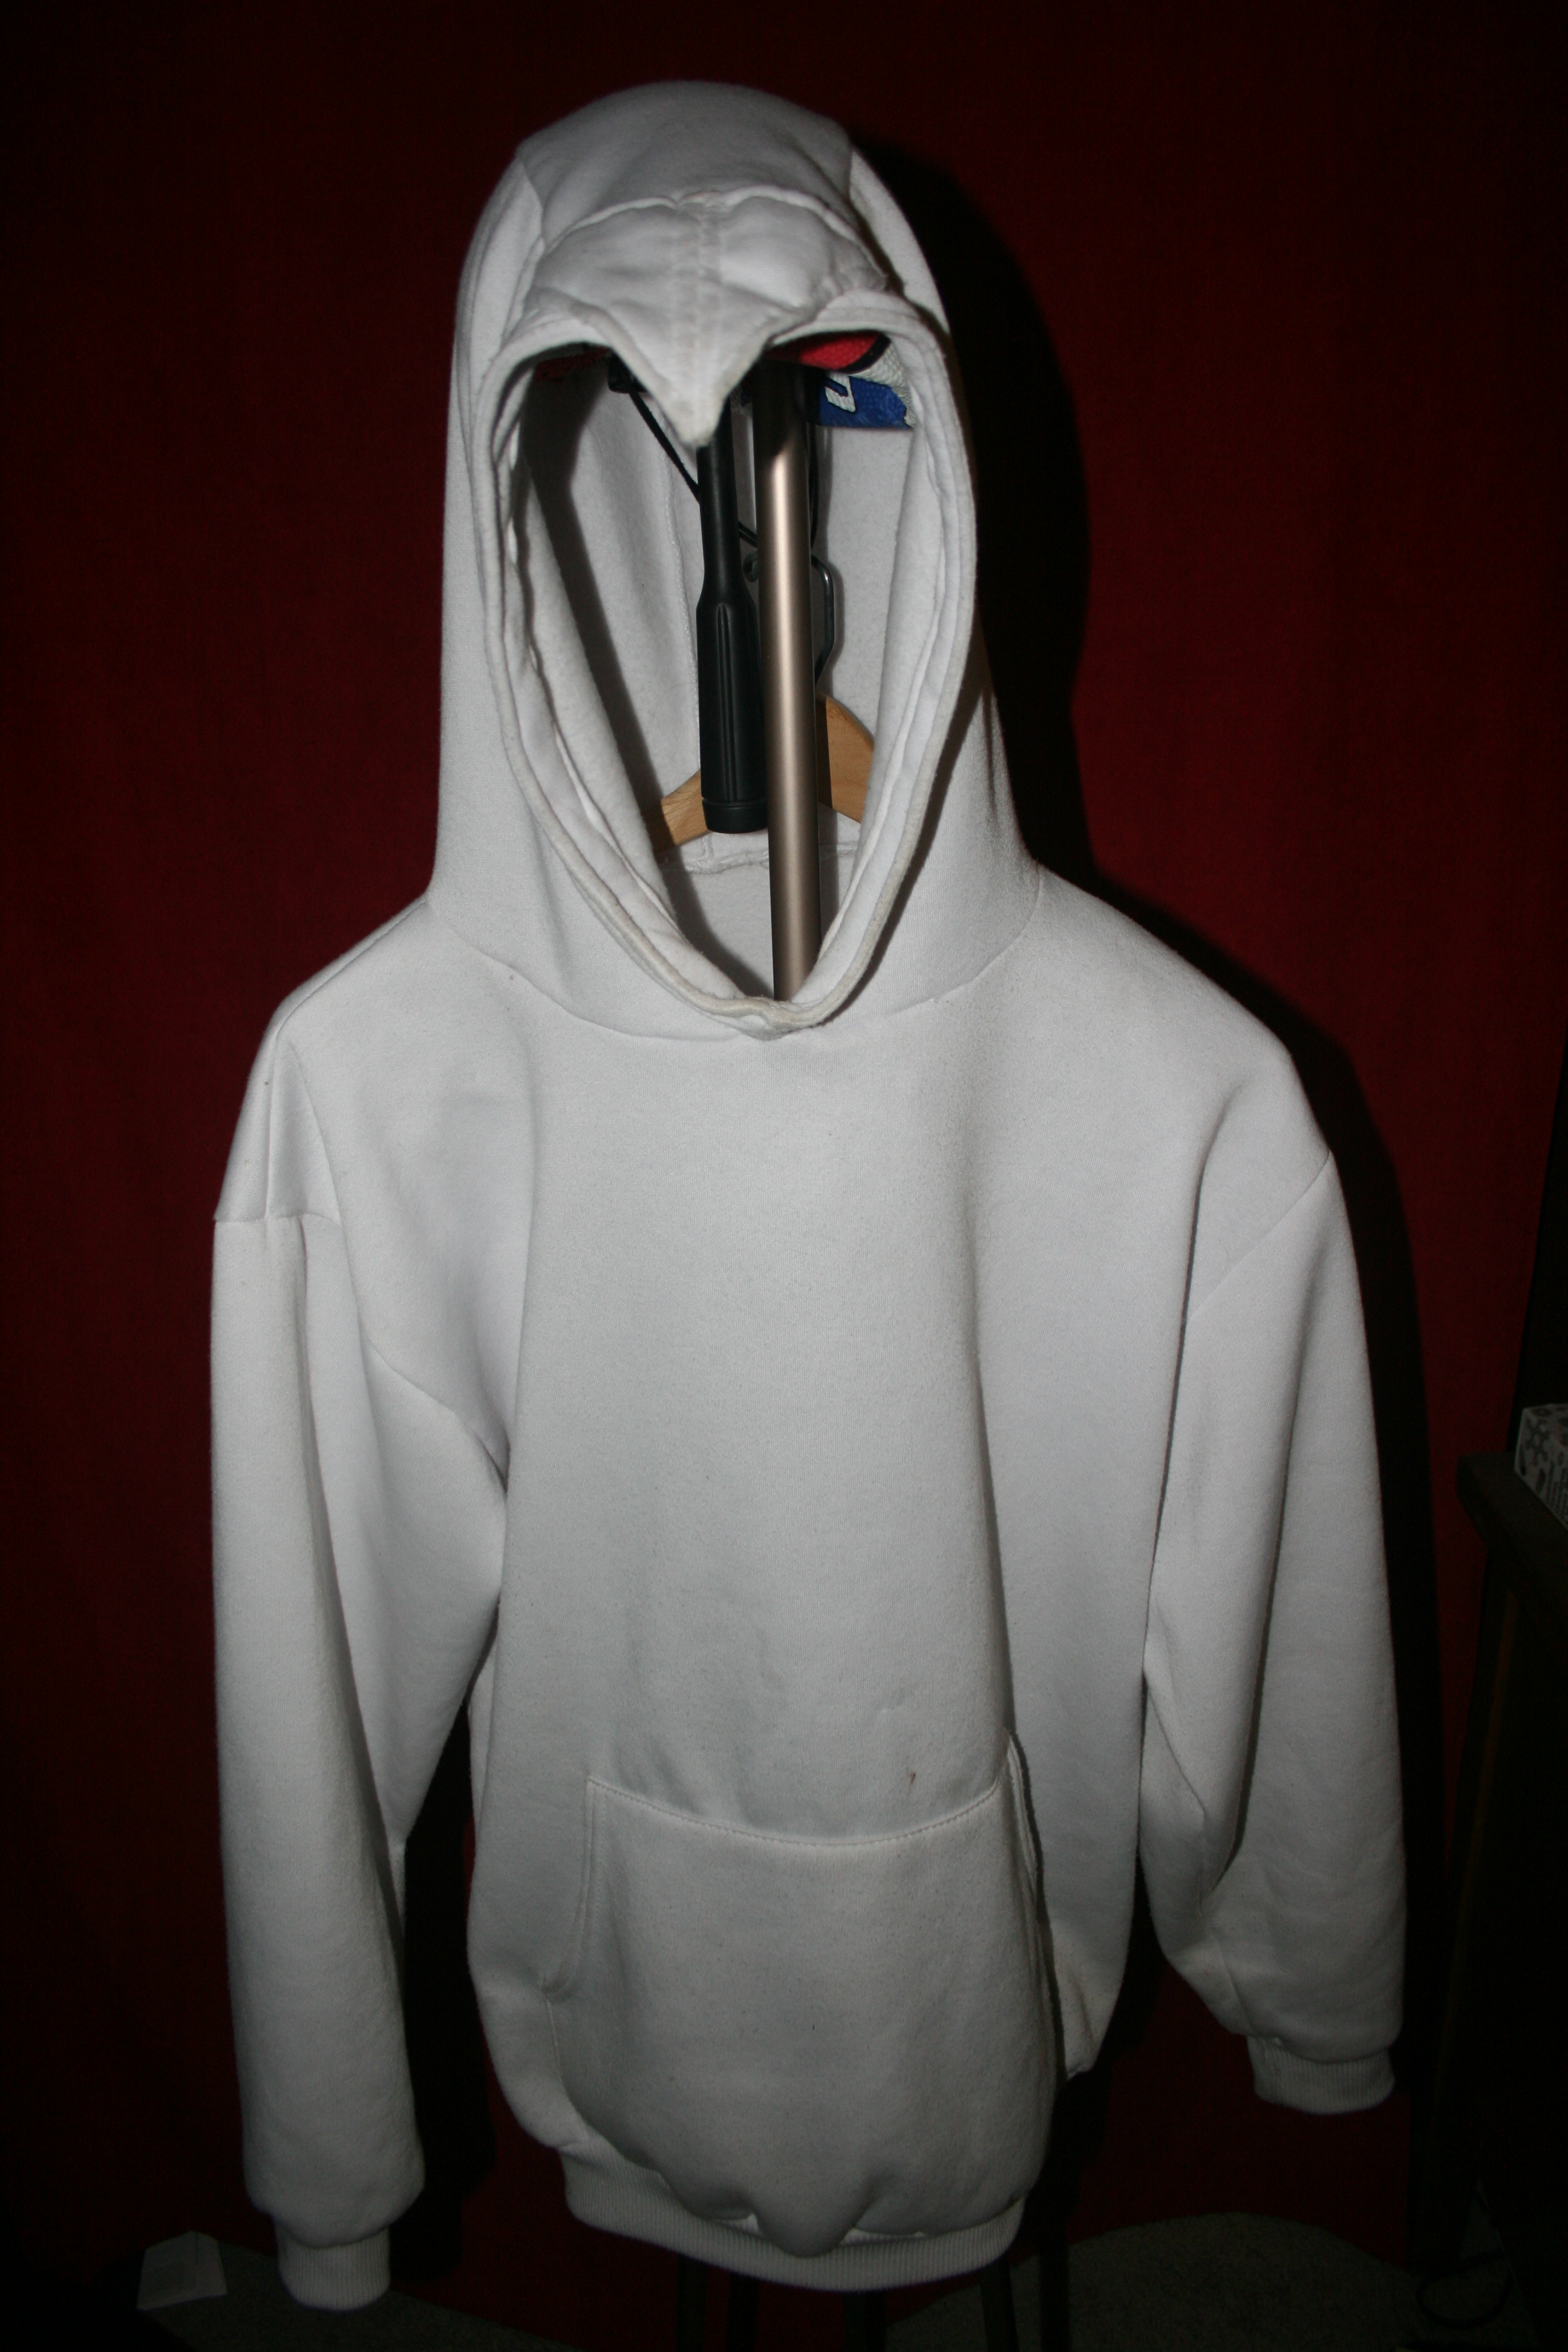 Assassin's Creed Hoodie (Photos Only)